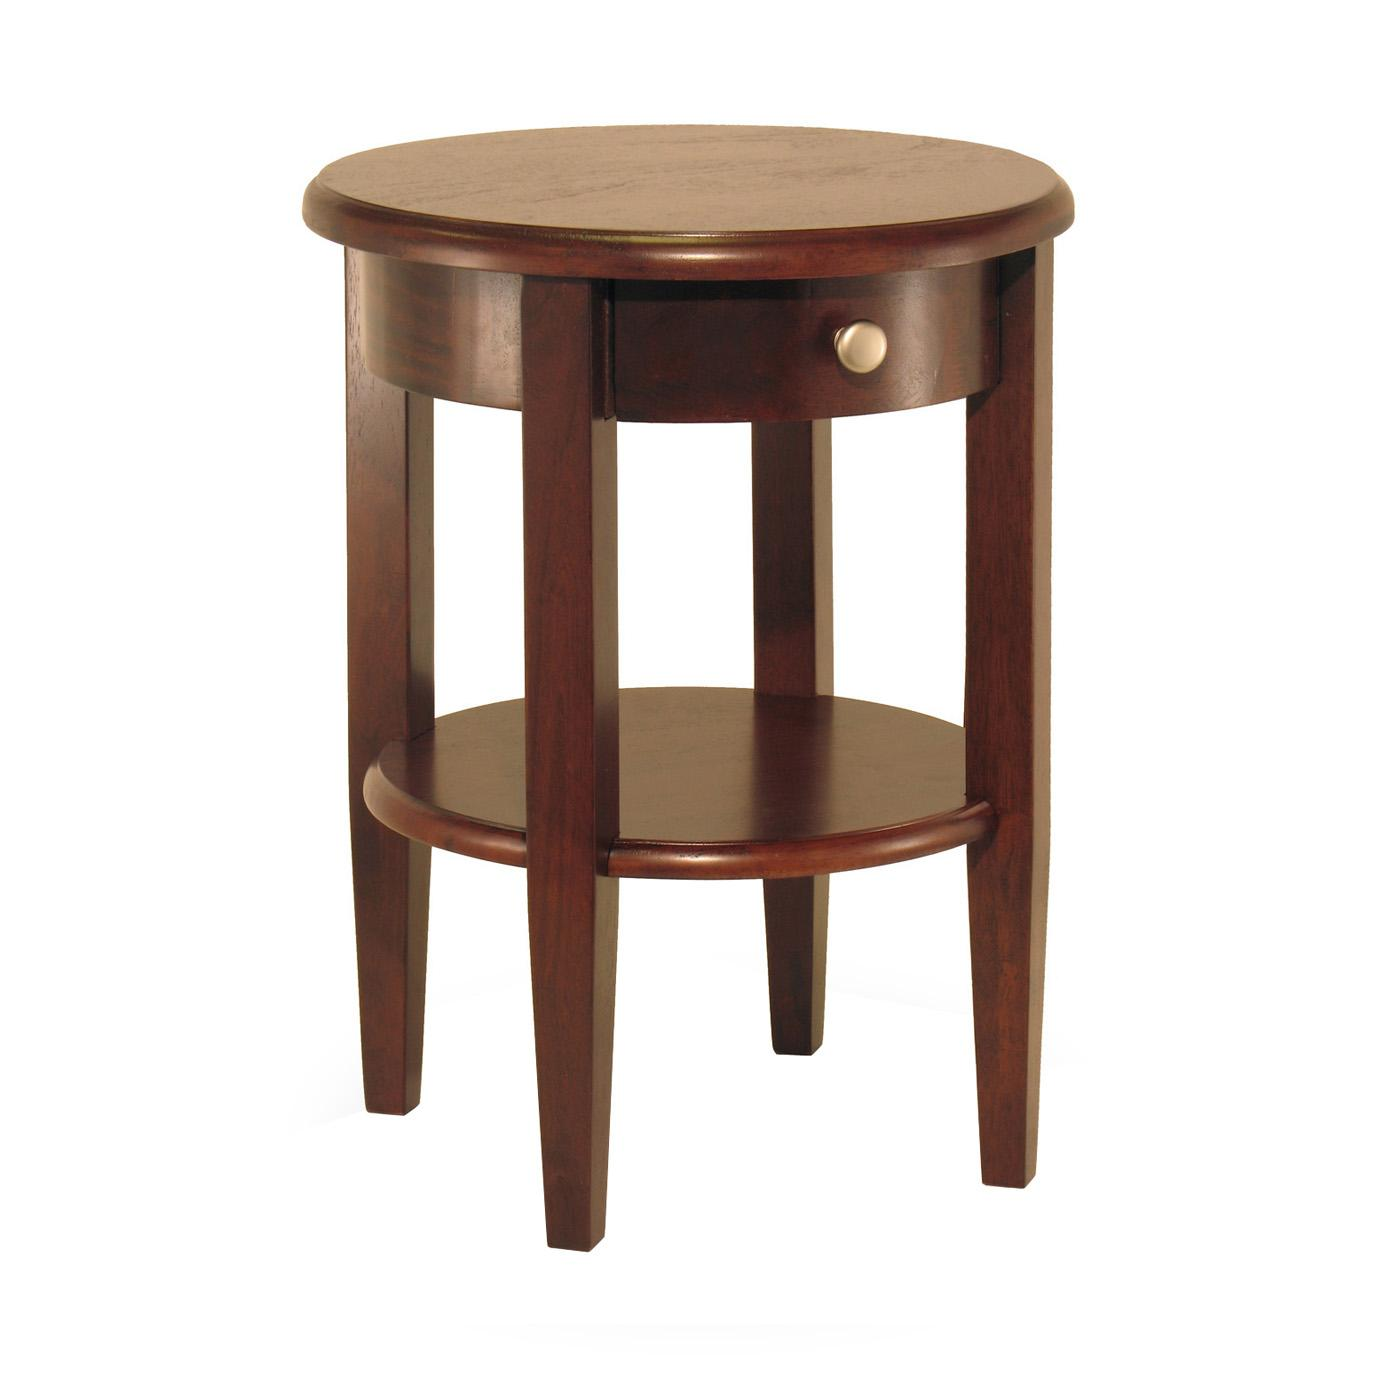 the fantastic free small round end table with drawer ture accent sevenstonesinc brown varnished walnut wood durham legs designs pier one glass tops folding bedside plastic patio